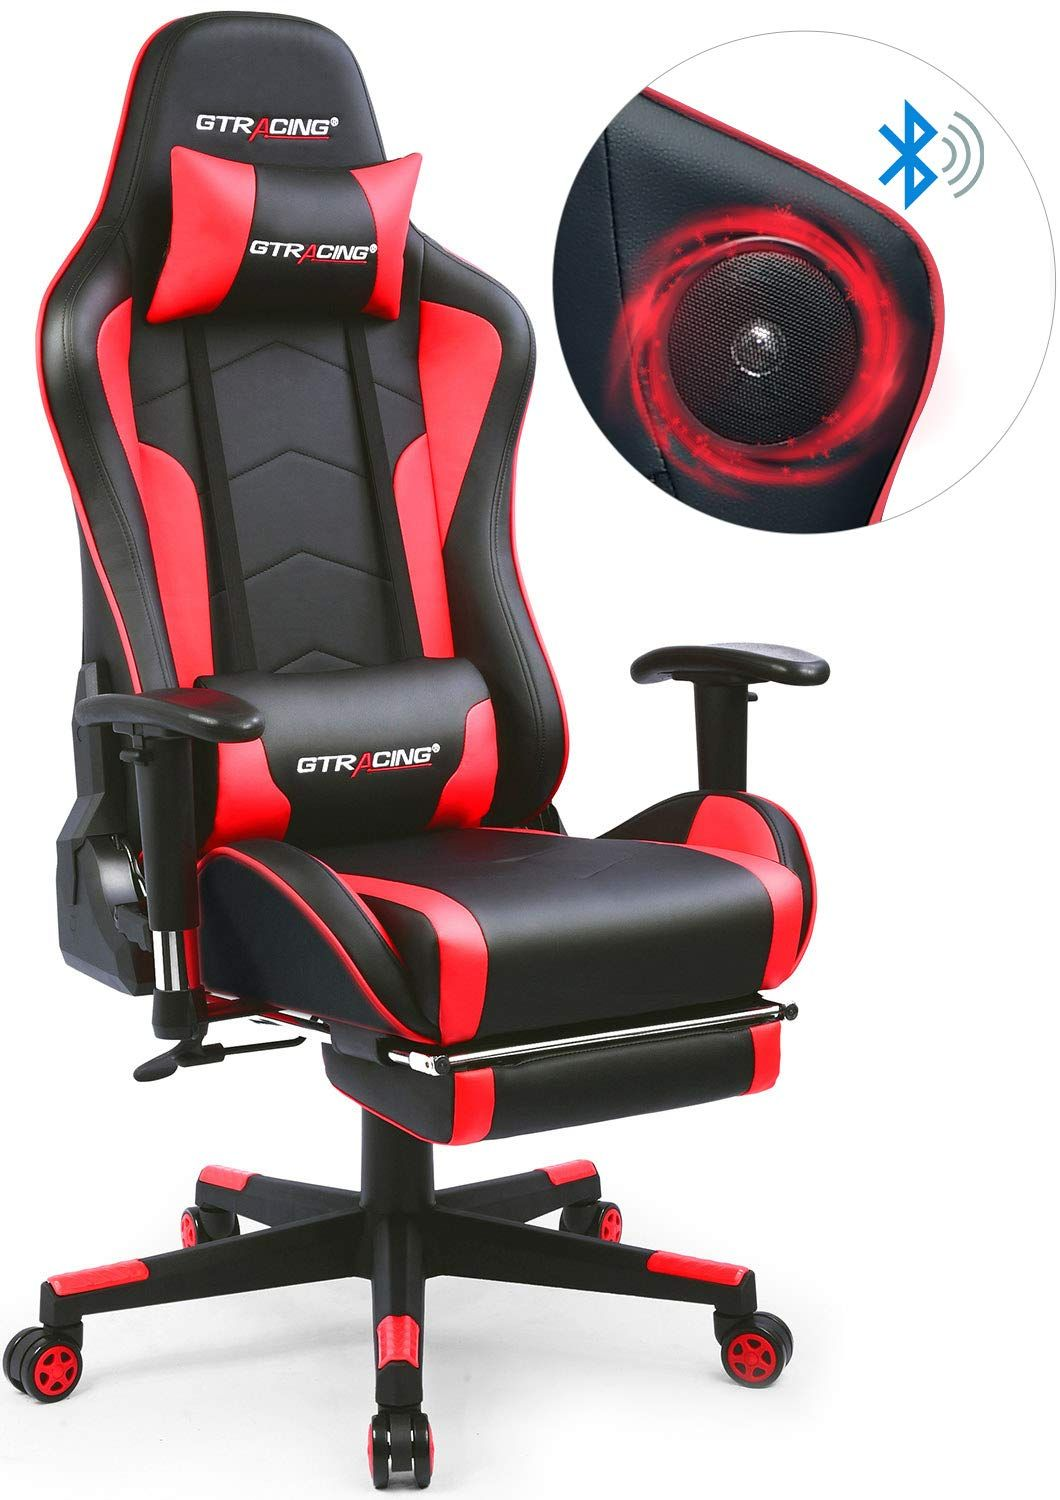 MUSIC GAMING CHAIR Original designed with two Bluetooth